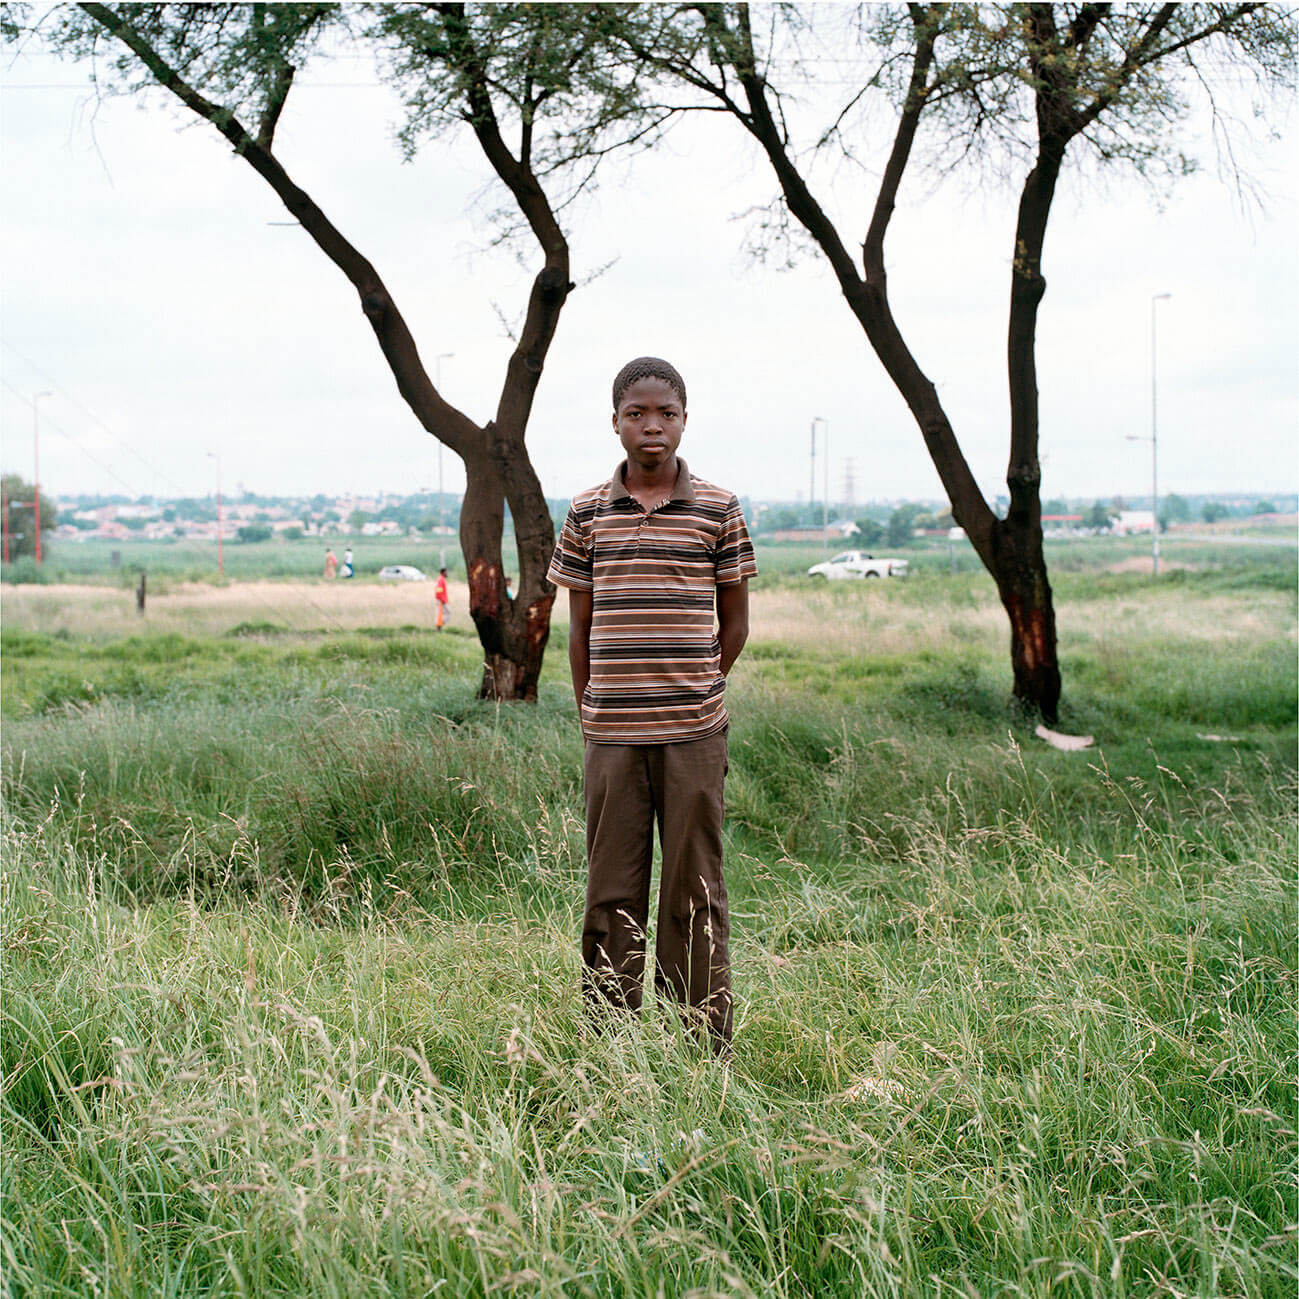 Claudio Rasano SOUTH AFRICA EVERYONE LIVE IN THE SAME PLACE LIKE BEFORE portrait of man stood in field